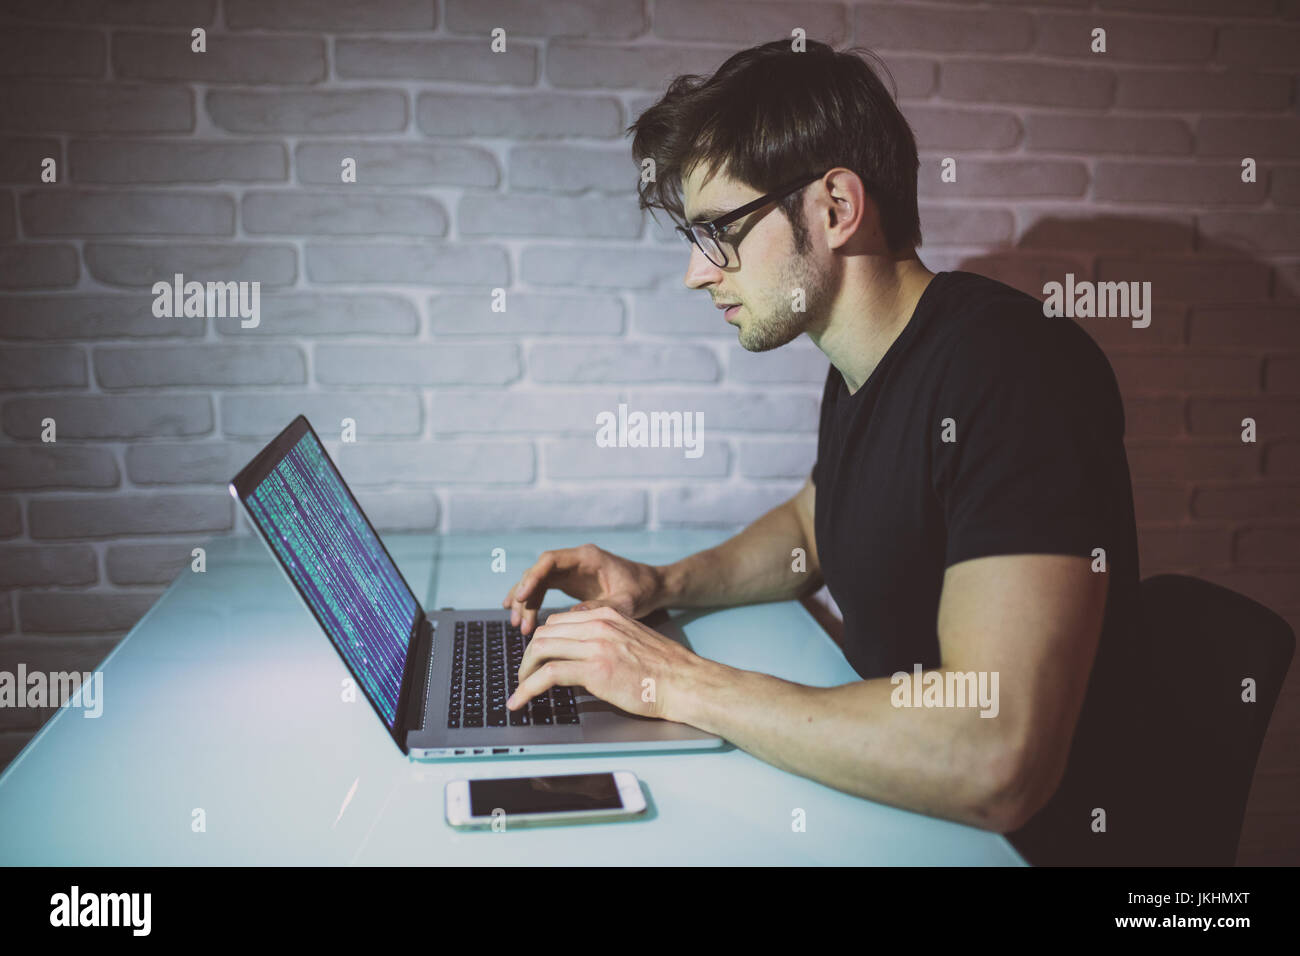 Young man programer work on laptop in the night and hack the network. Young hacker attack a network in the night. - Stock Image